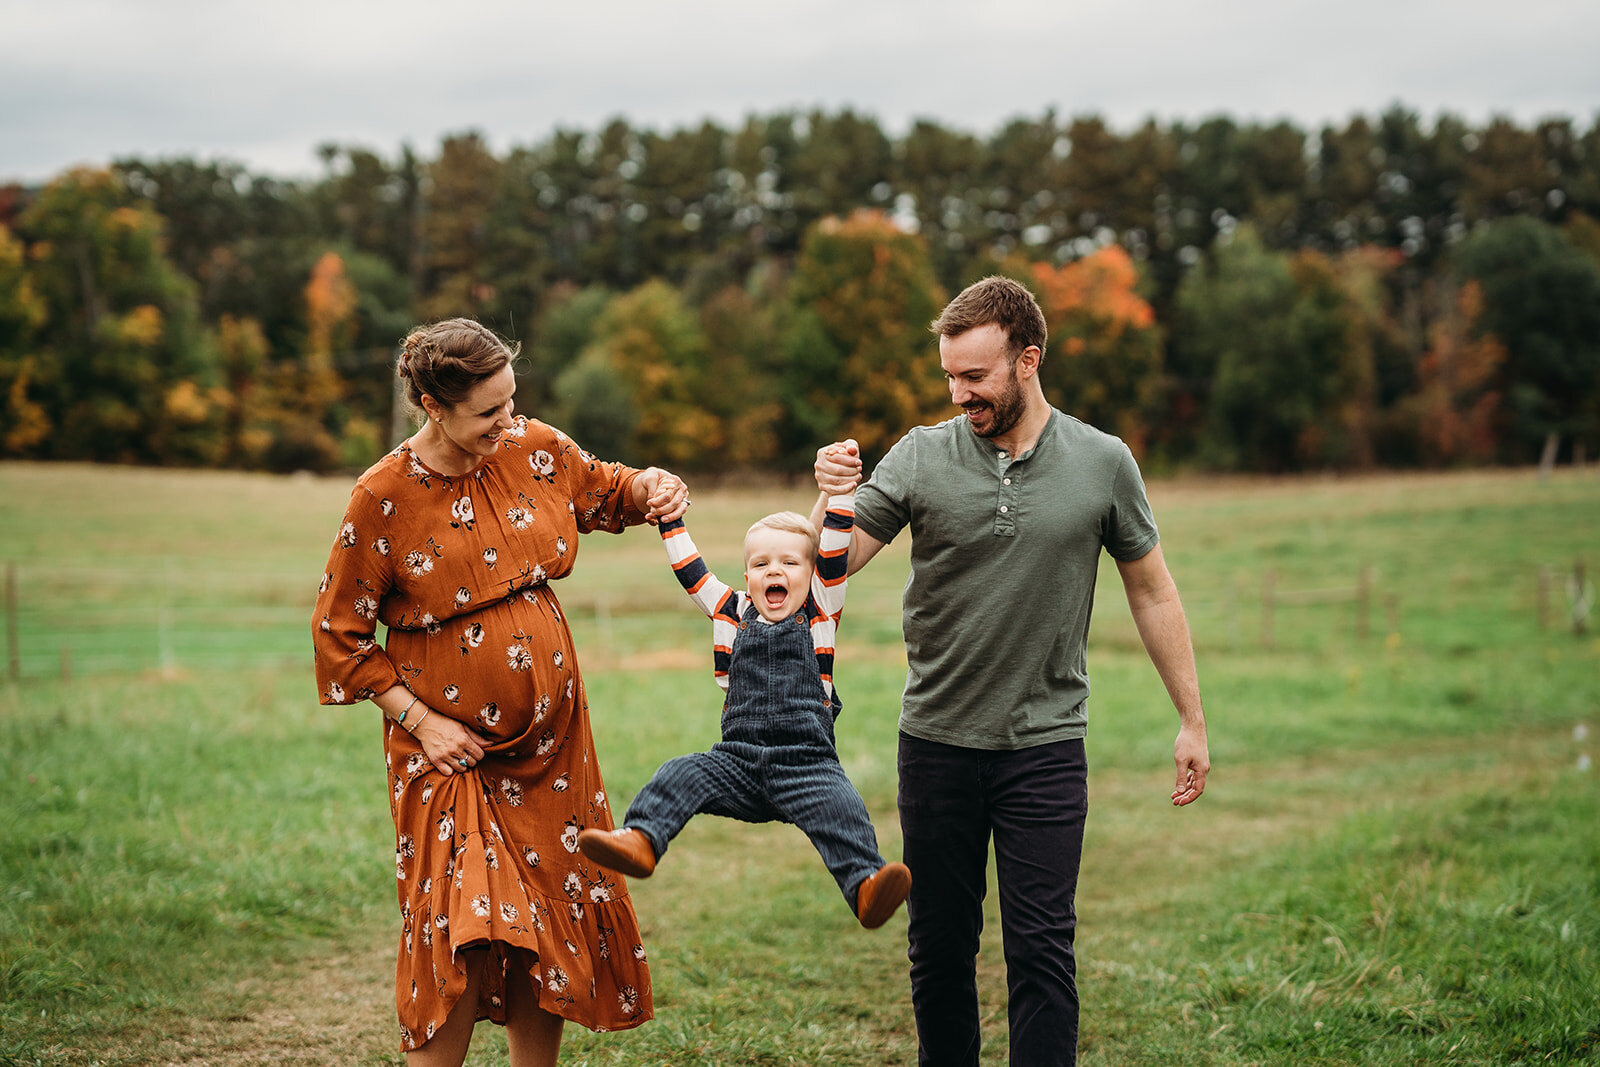 pregnant couple swings toddler boy in air during maternity pictures